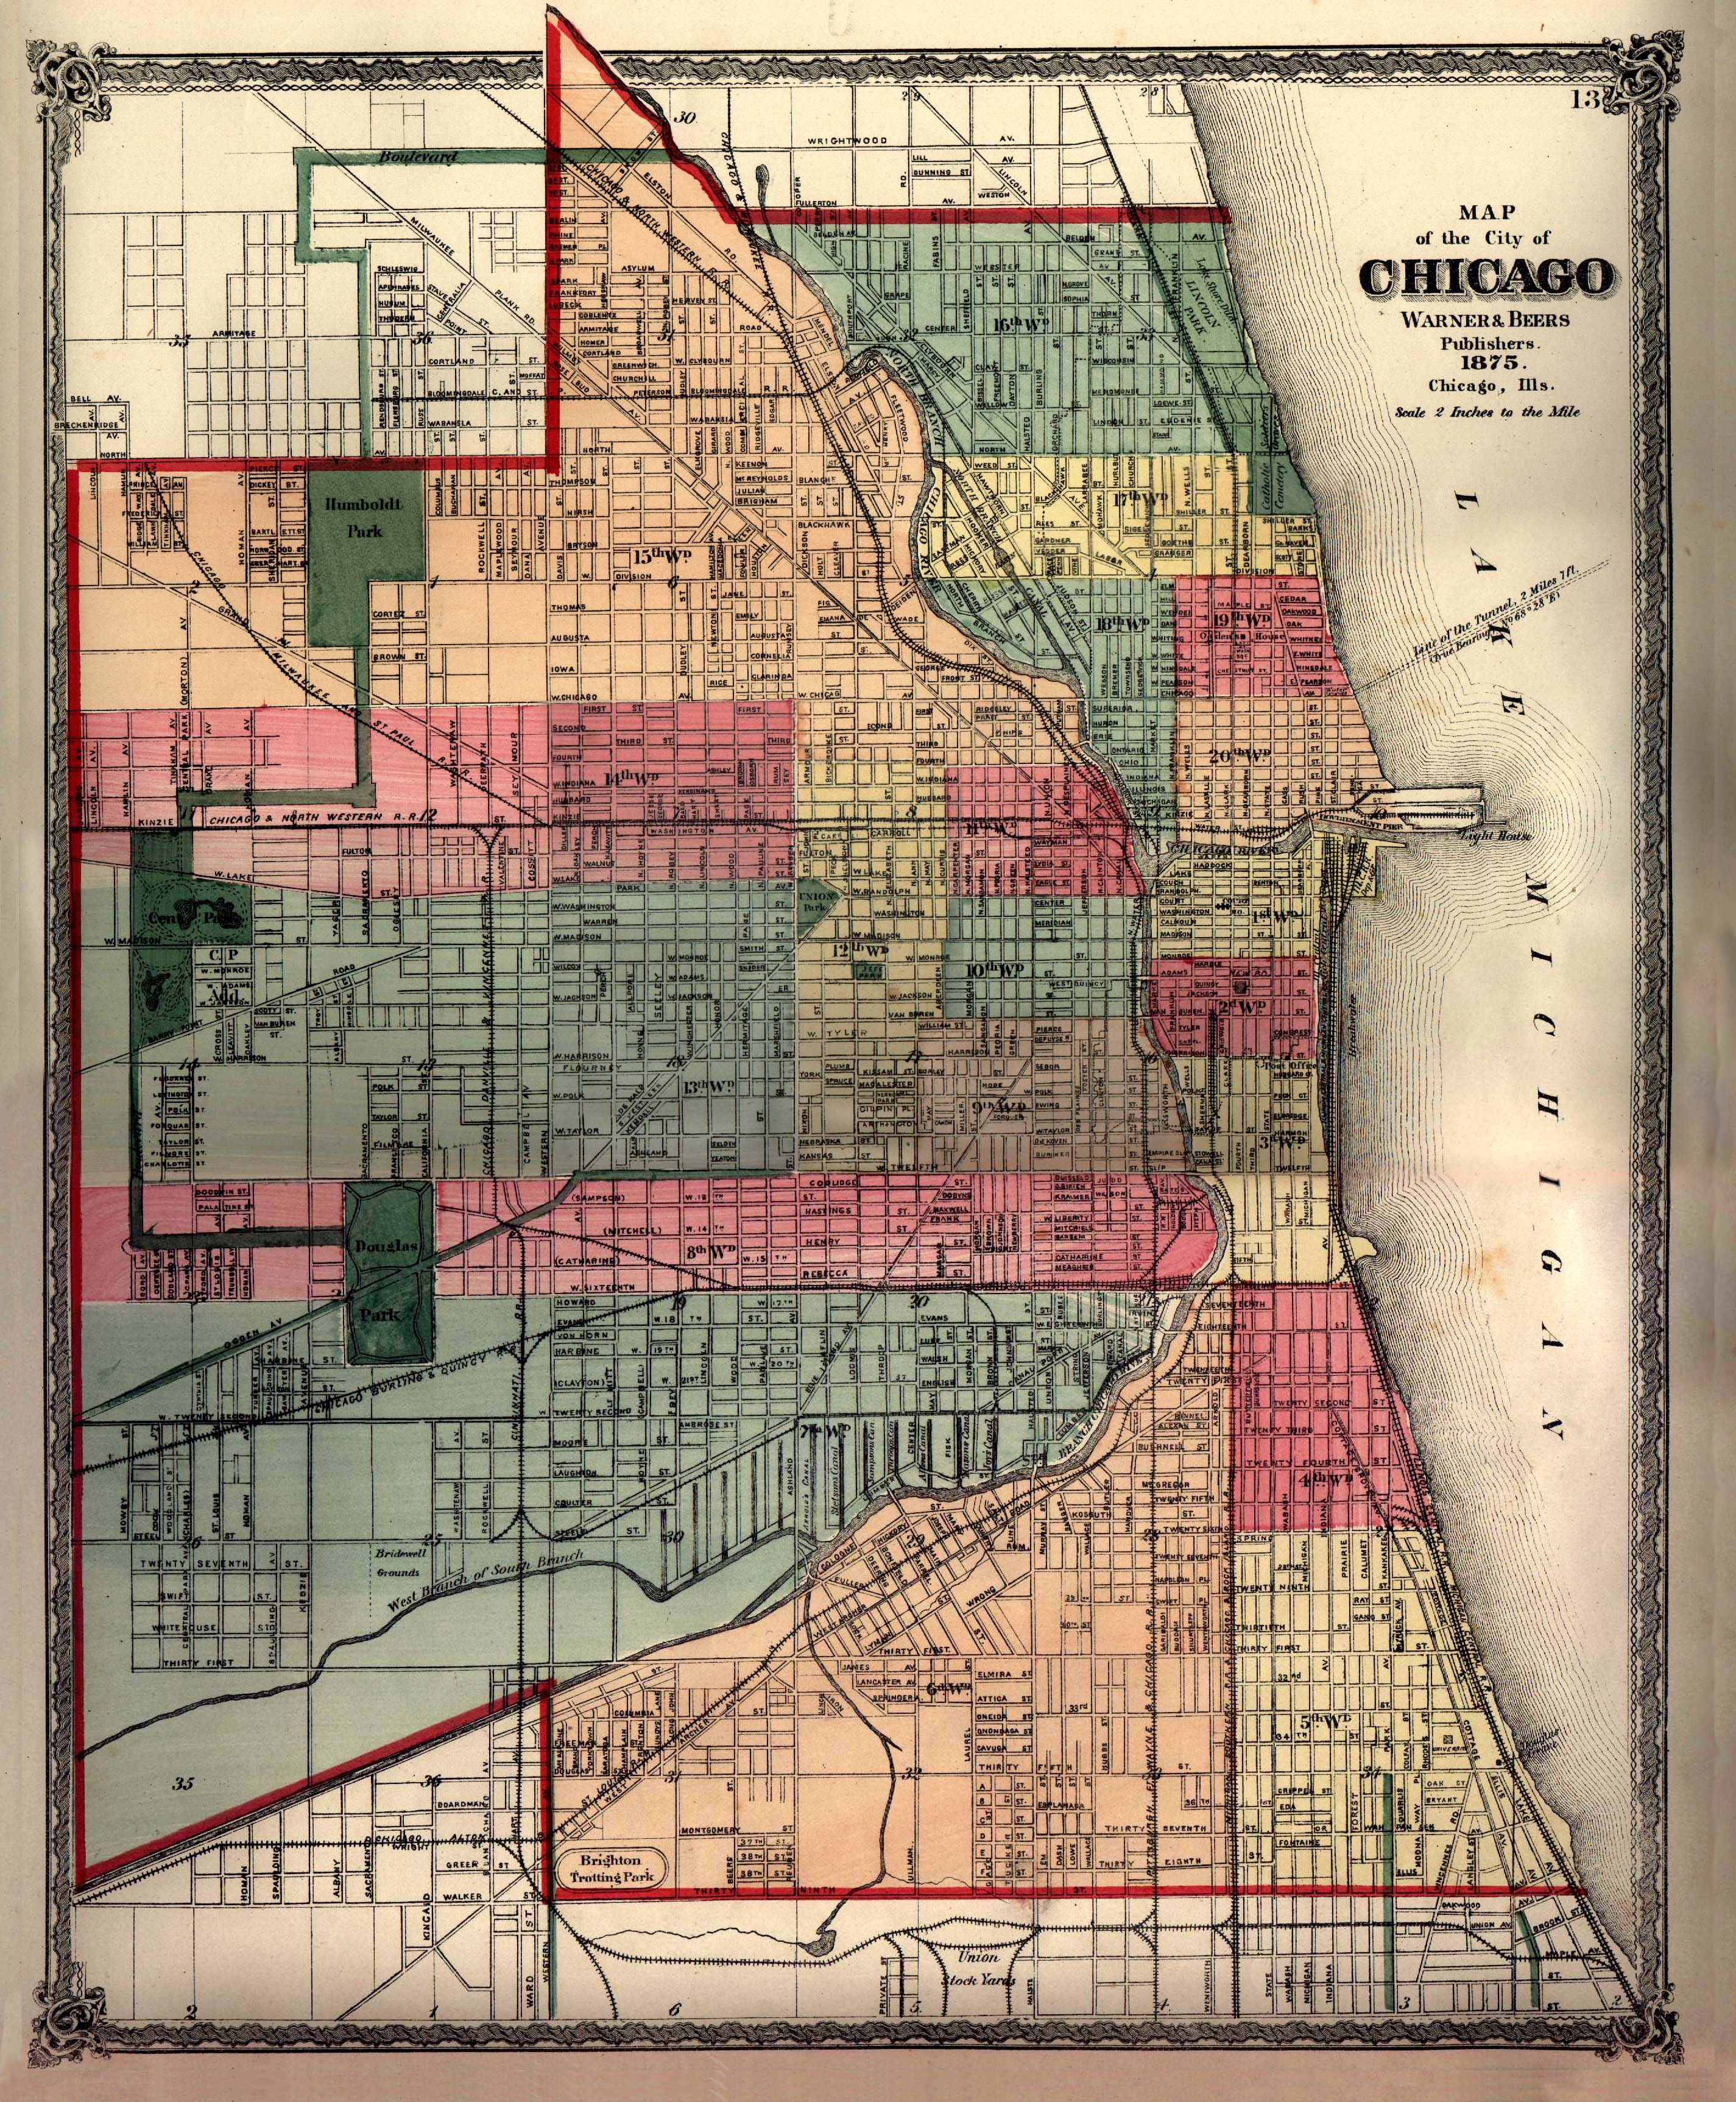 FileChicagowarnerbeersjpg Wikimedia Commons - Chicago il map neighborhoods